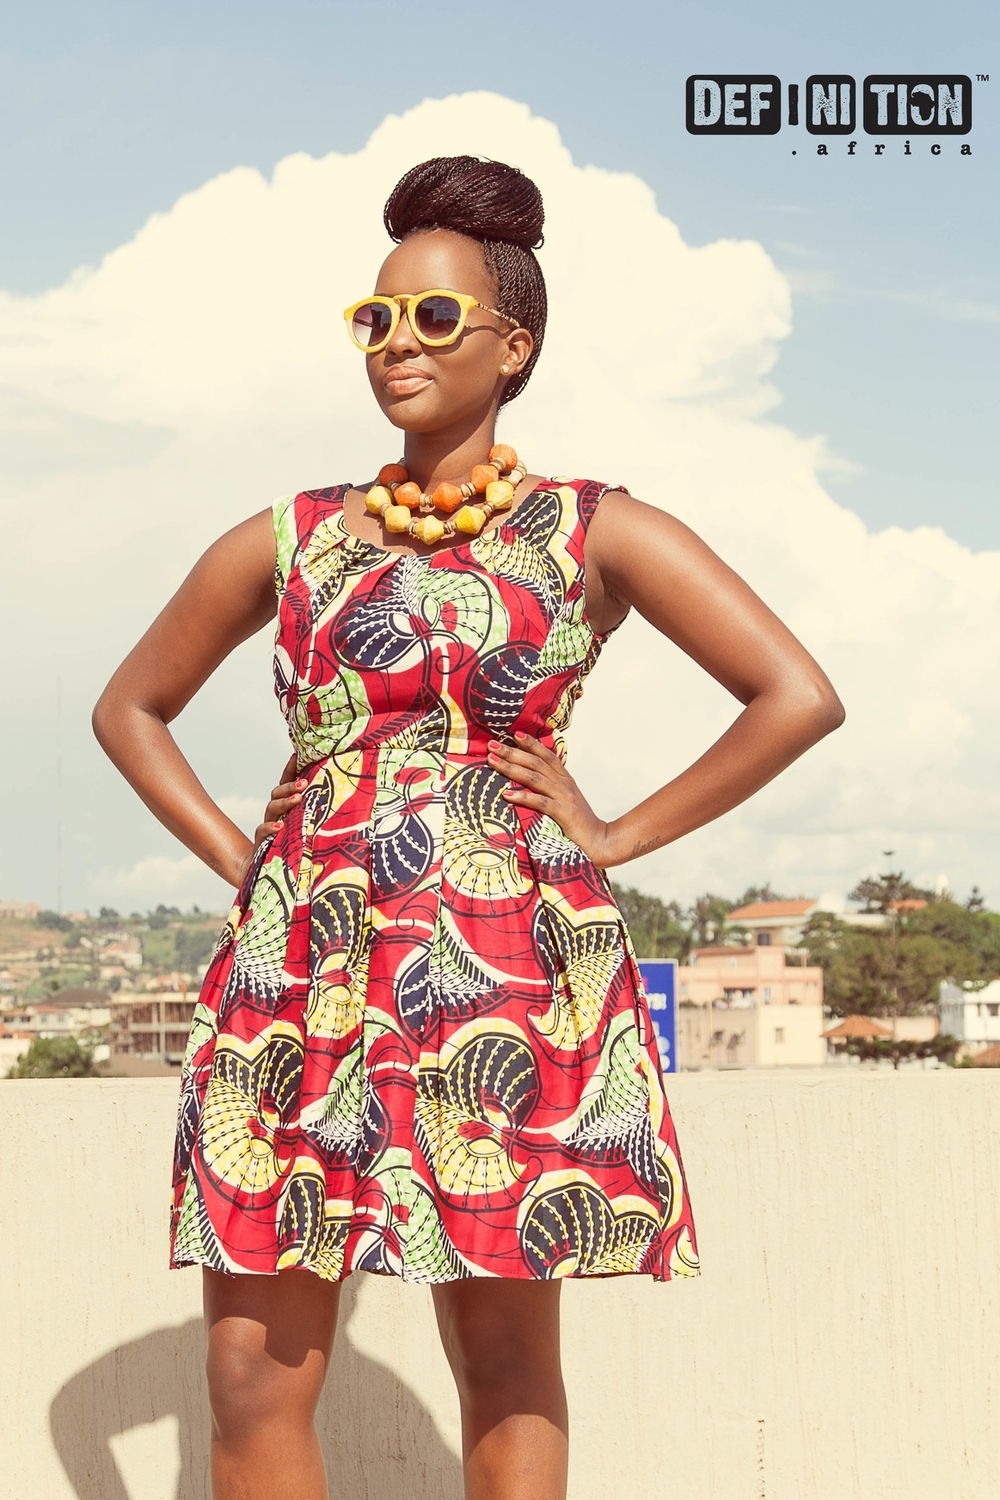 Definition Africa - Pleated Dress - Balungi Necklace & Glasses.jpg